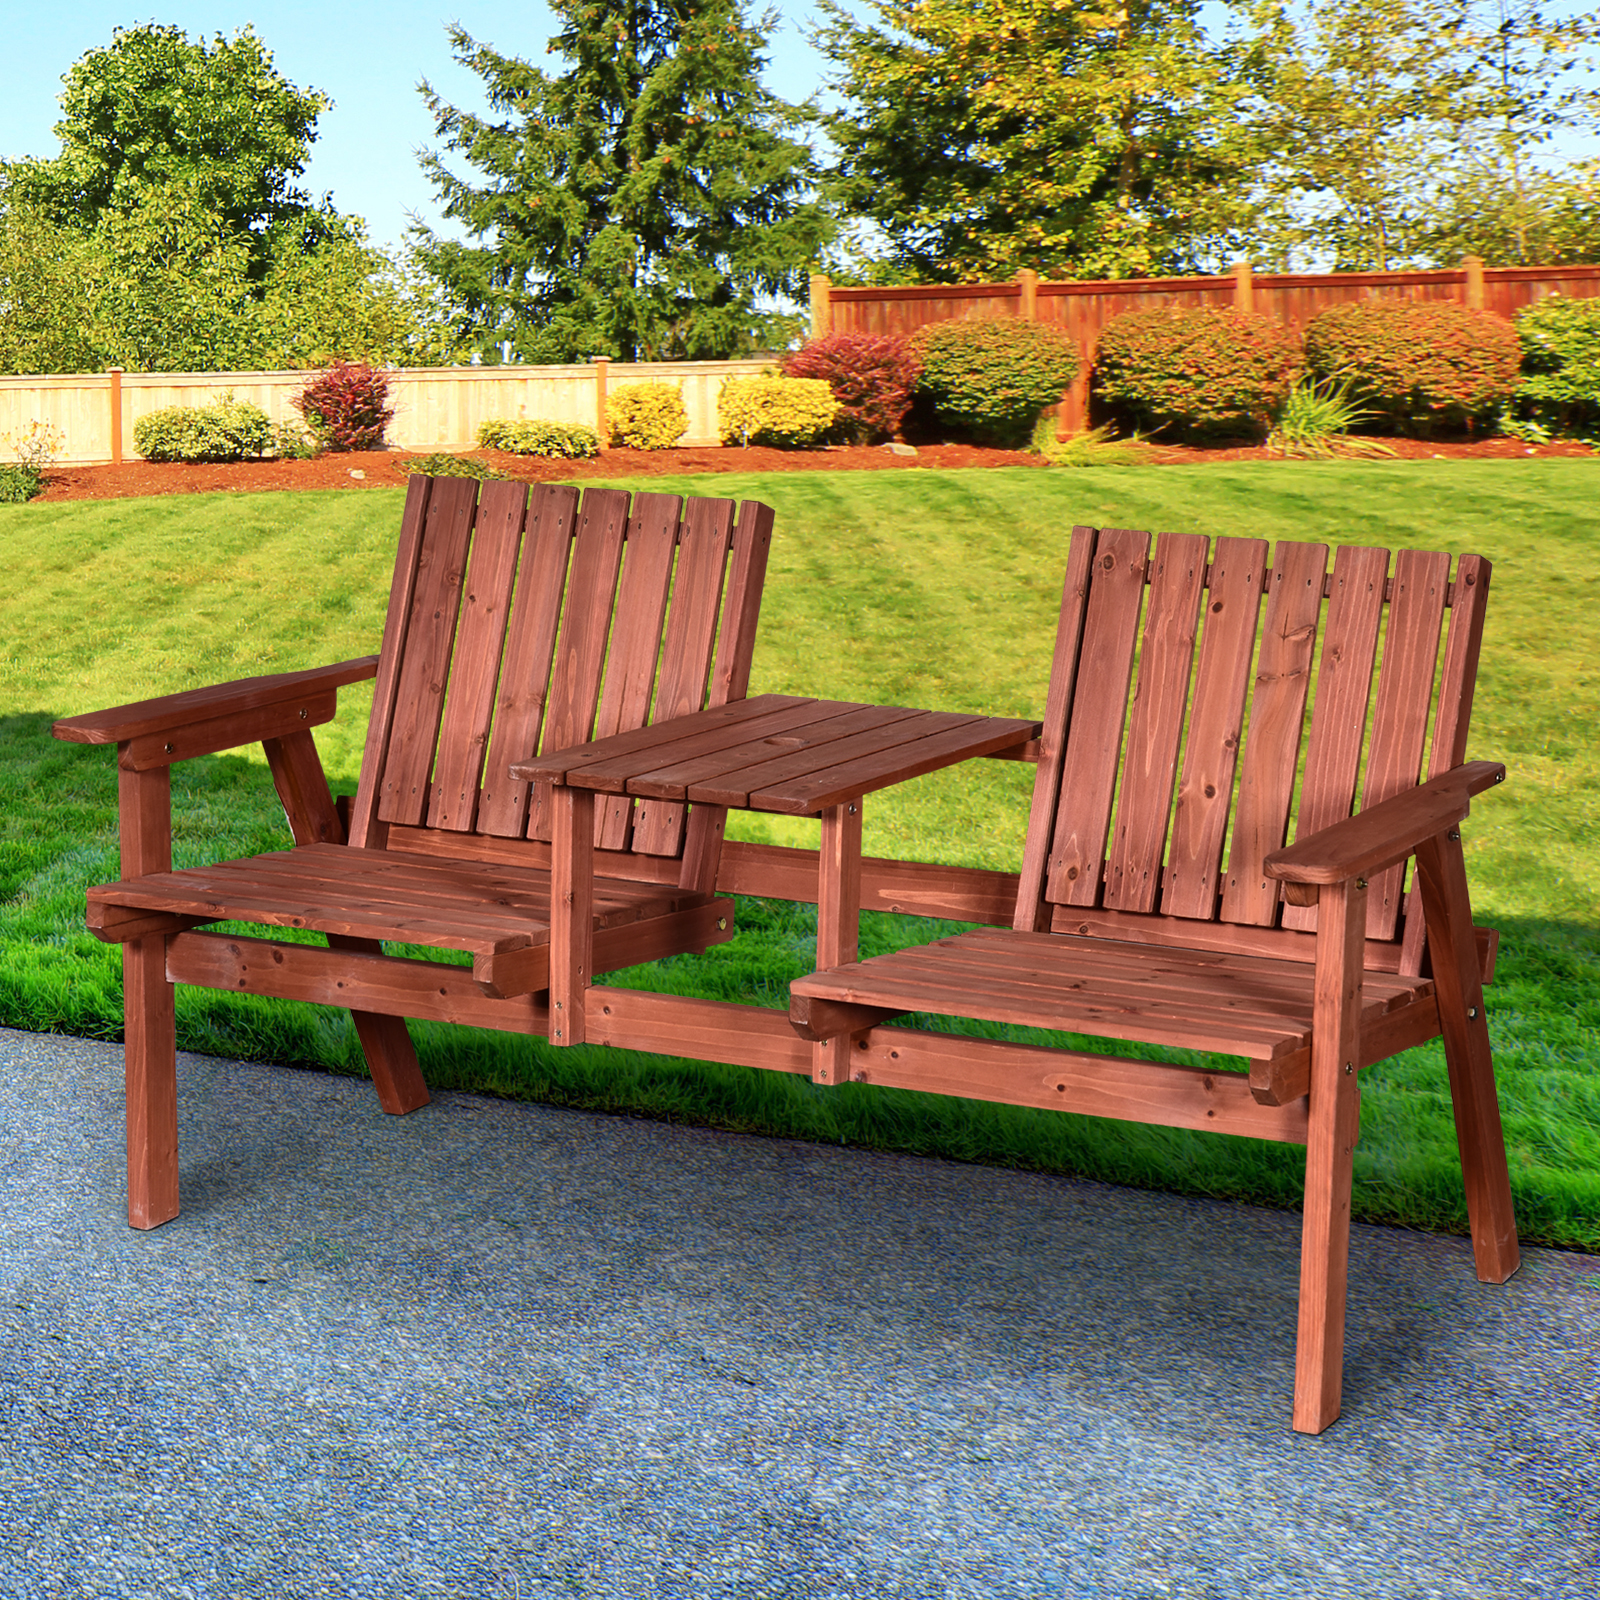 Details about Outsunny Outdoor Patio Tete a Tete Loveseat Garden Bench  Chair Wooden with Table